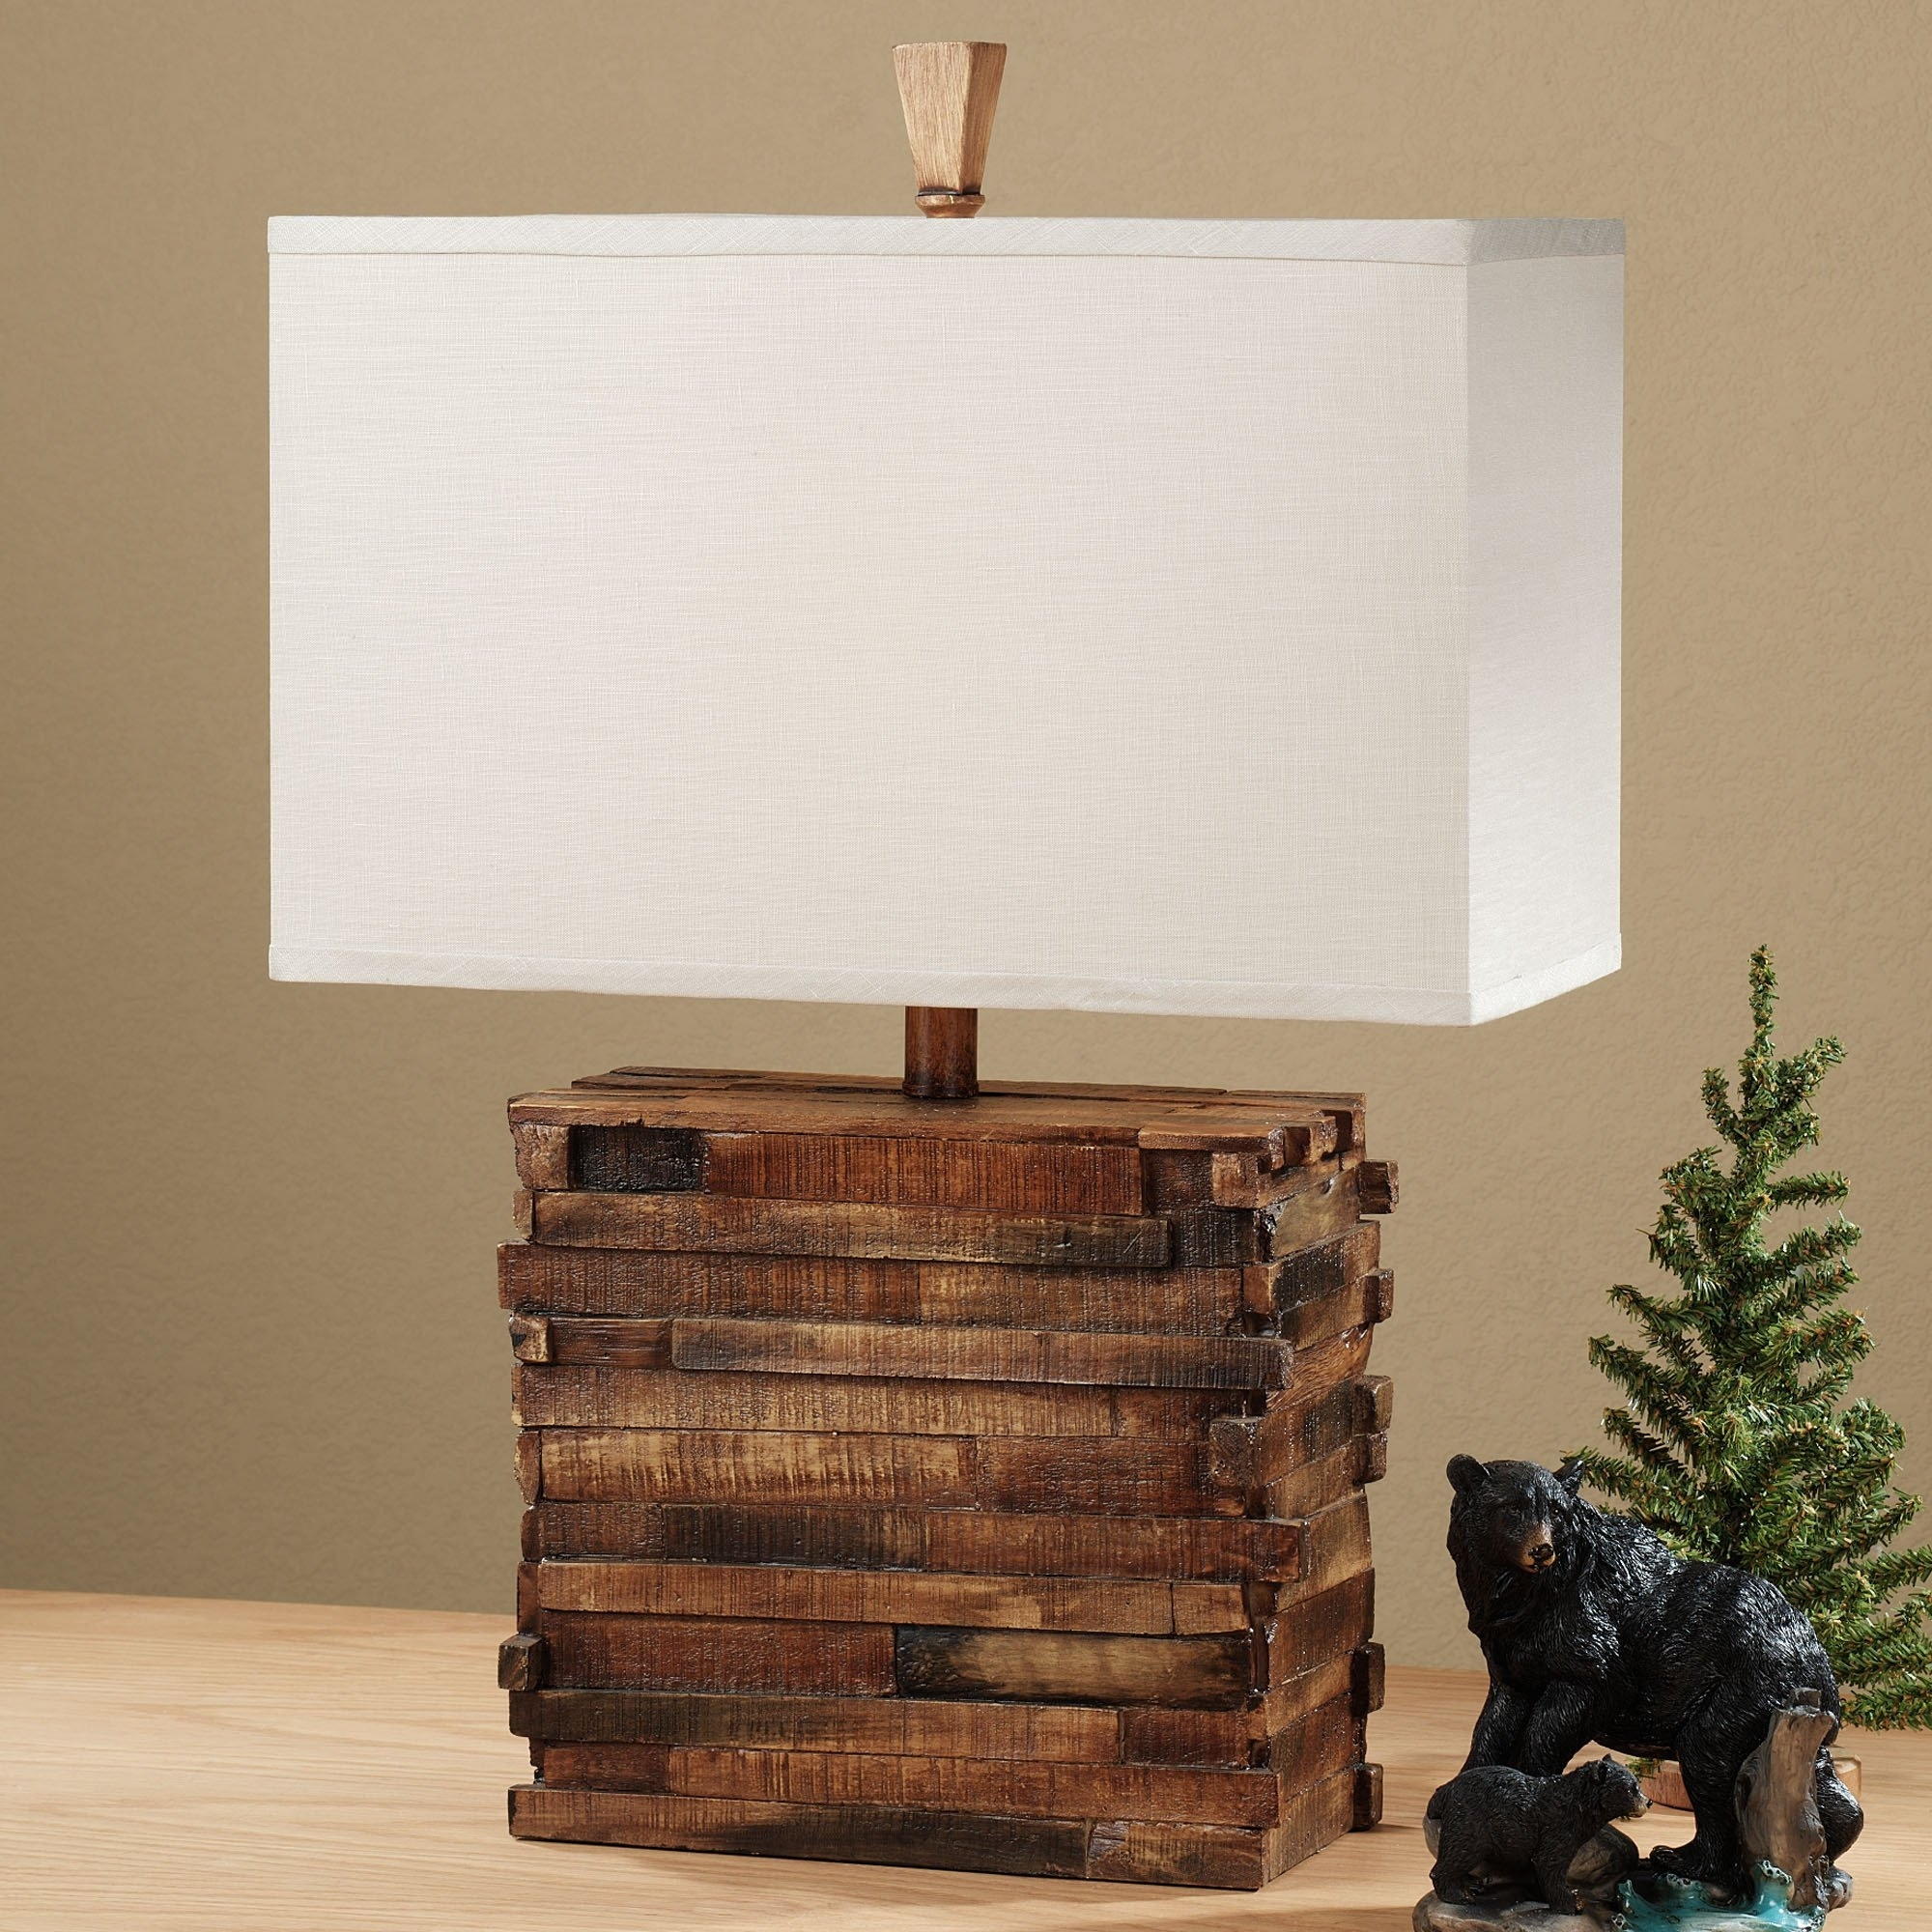 Rustic Living Room Table Lamps Modern House, Rustic Table Lamps Pertaining To Recent Rustic Living Room Table Lamps (View 2 of 15)